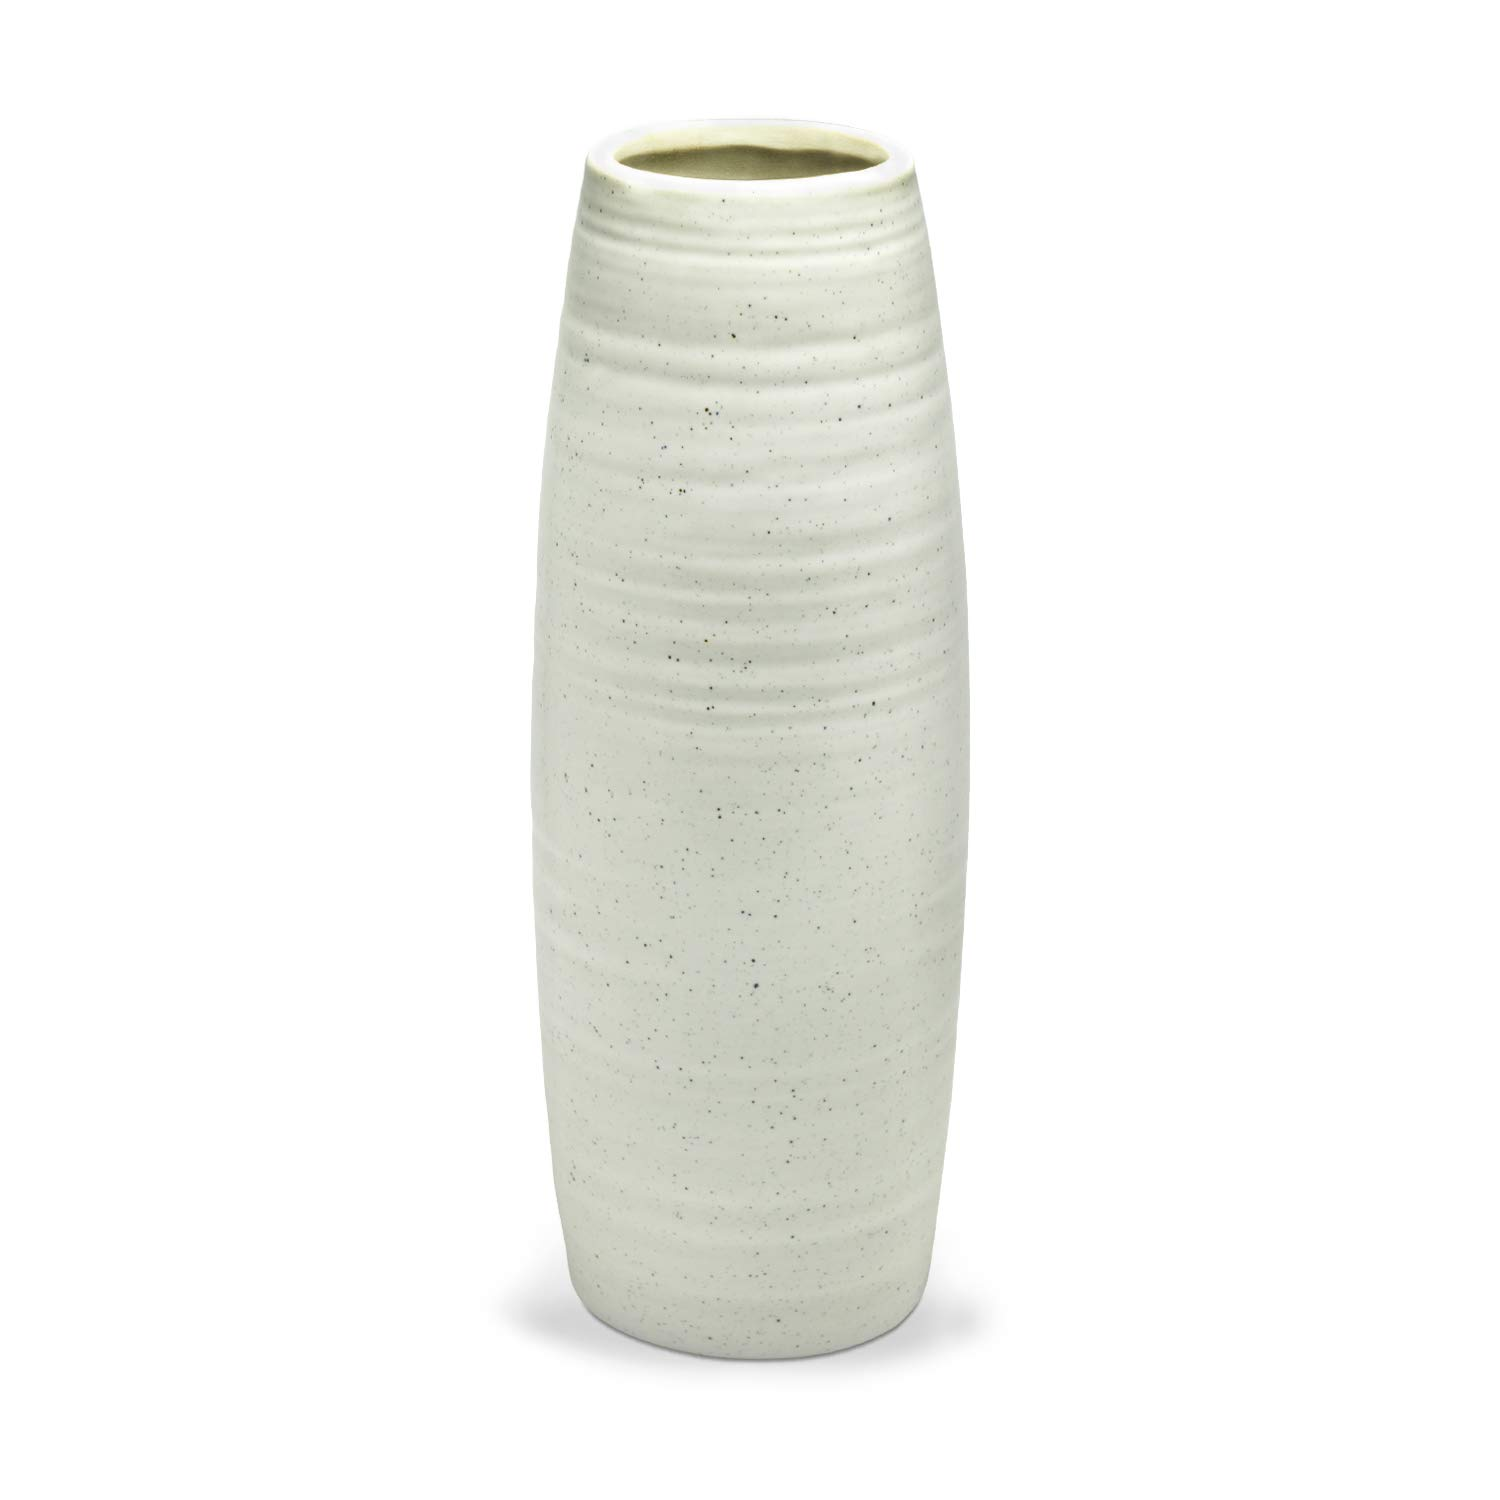 Flower Bouquet Vase, Dr.Cerart 8.5 Inch White Textured Ceramic Vase for Home Decor, Centerpieces, Office - Ideal Present Choice